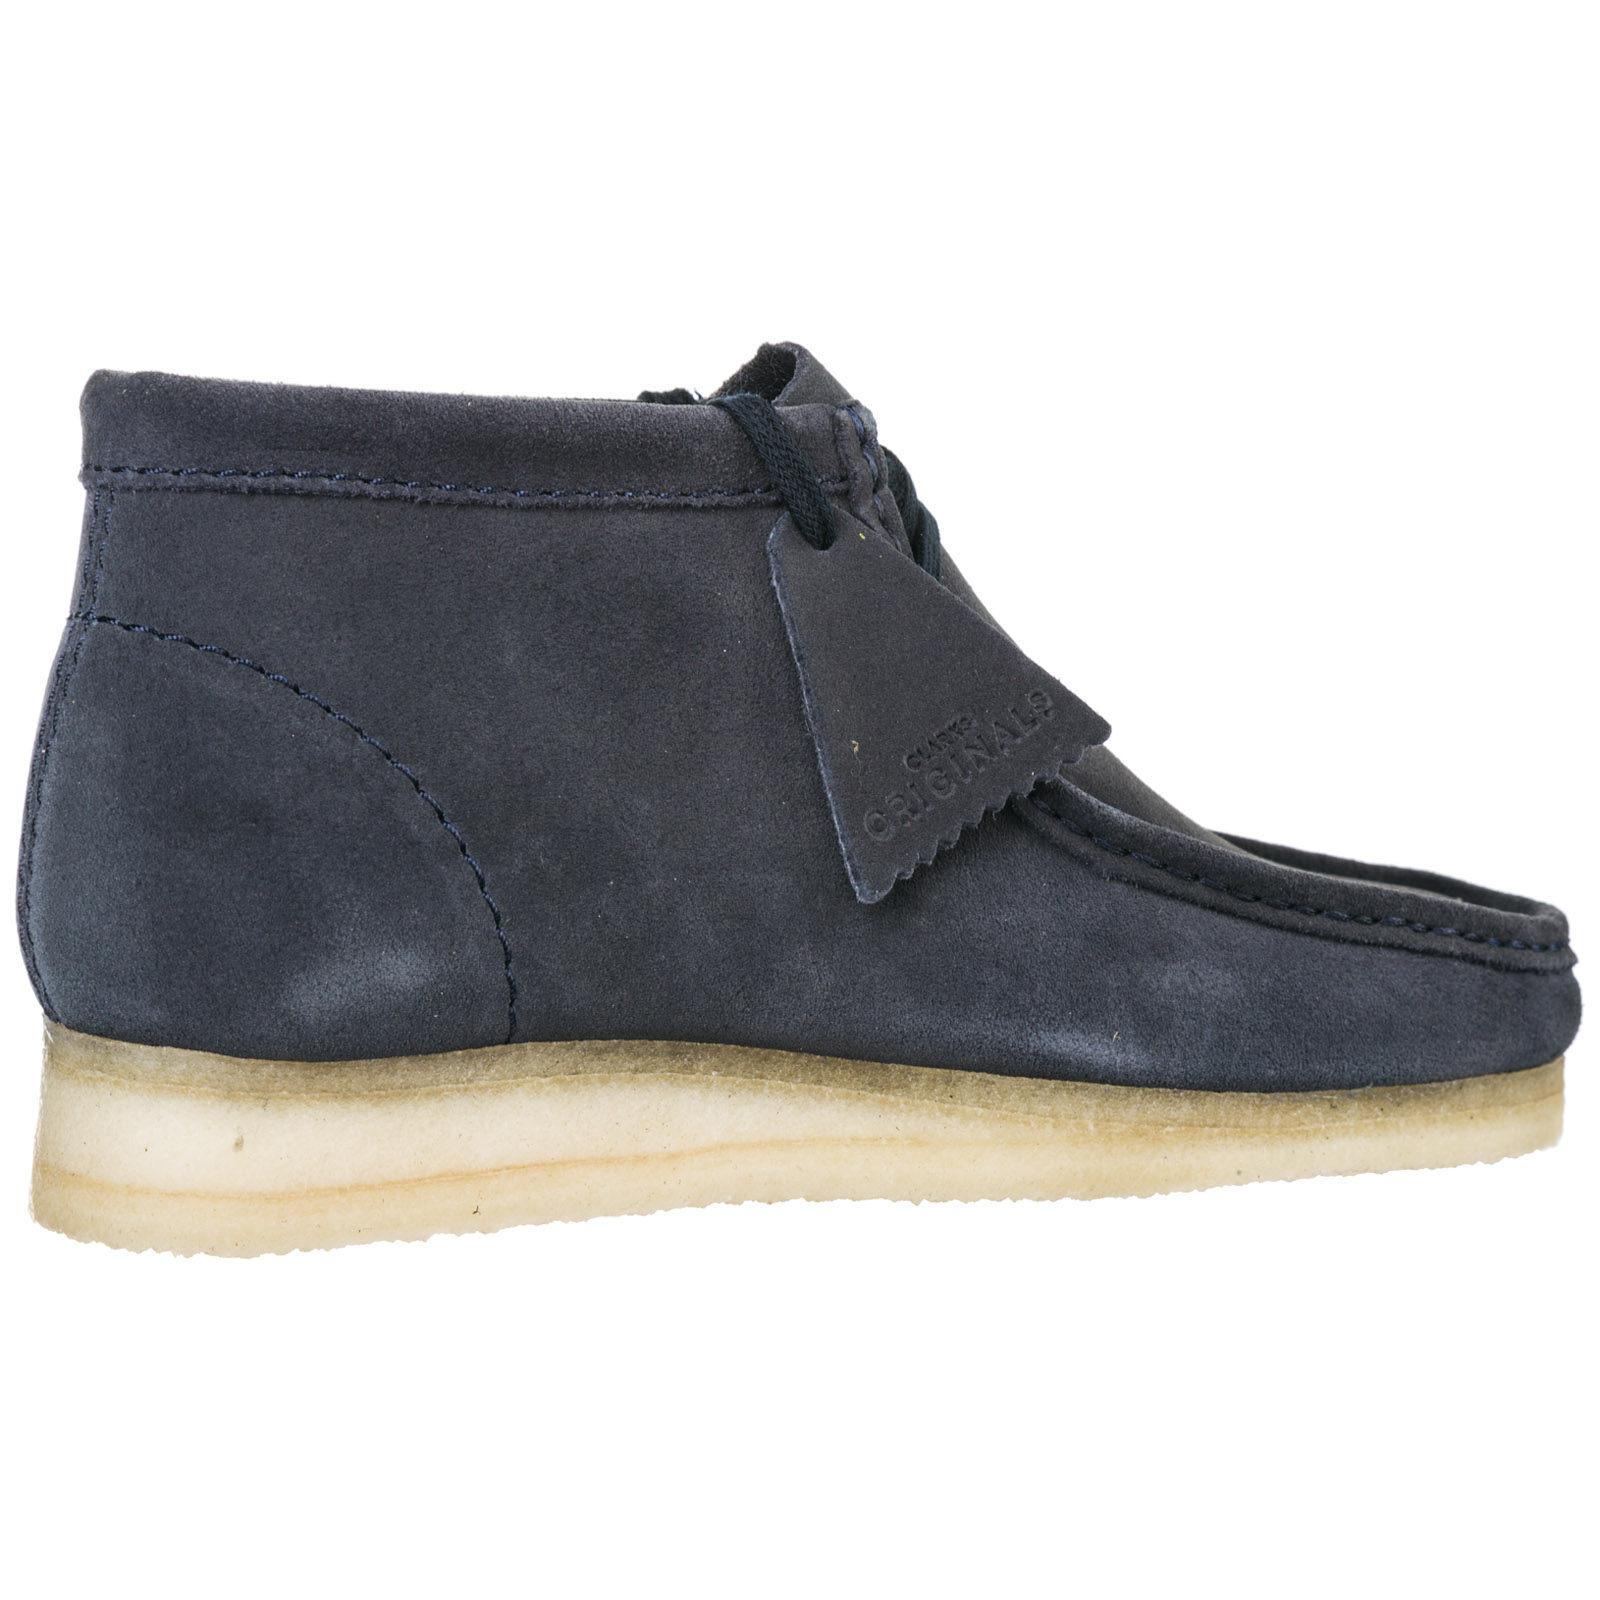 Men's suede desert boots lace up ankle boots wallabee